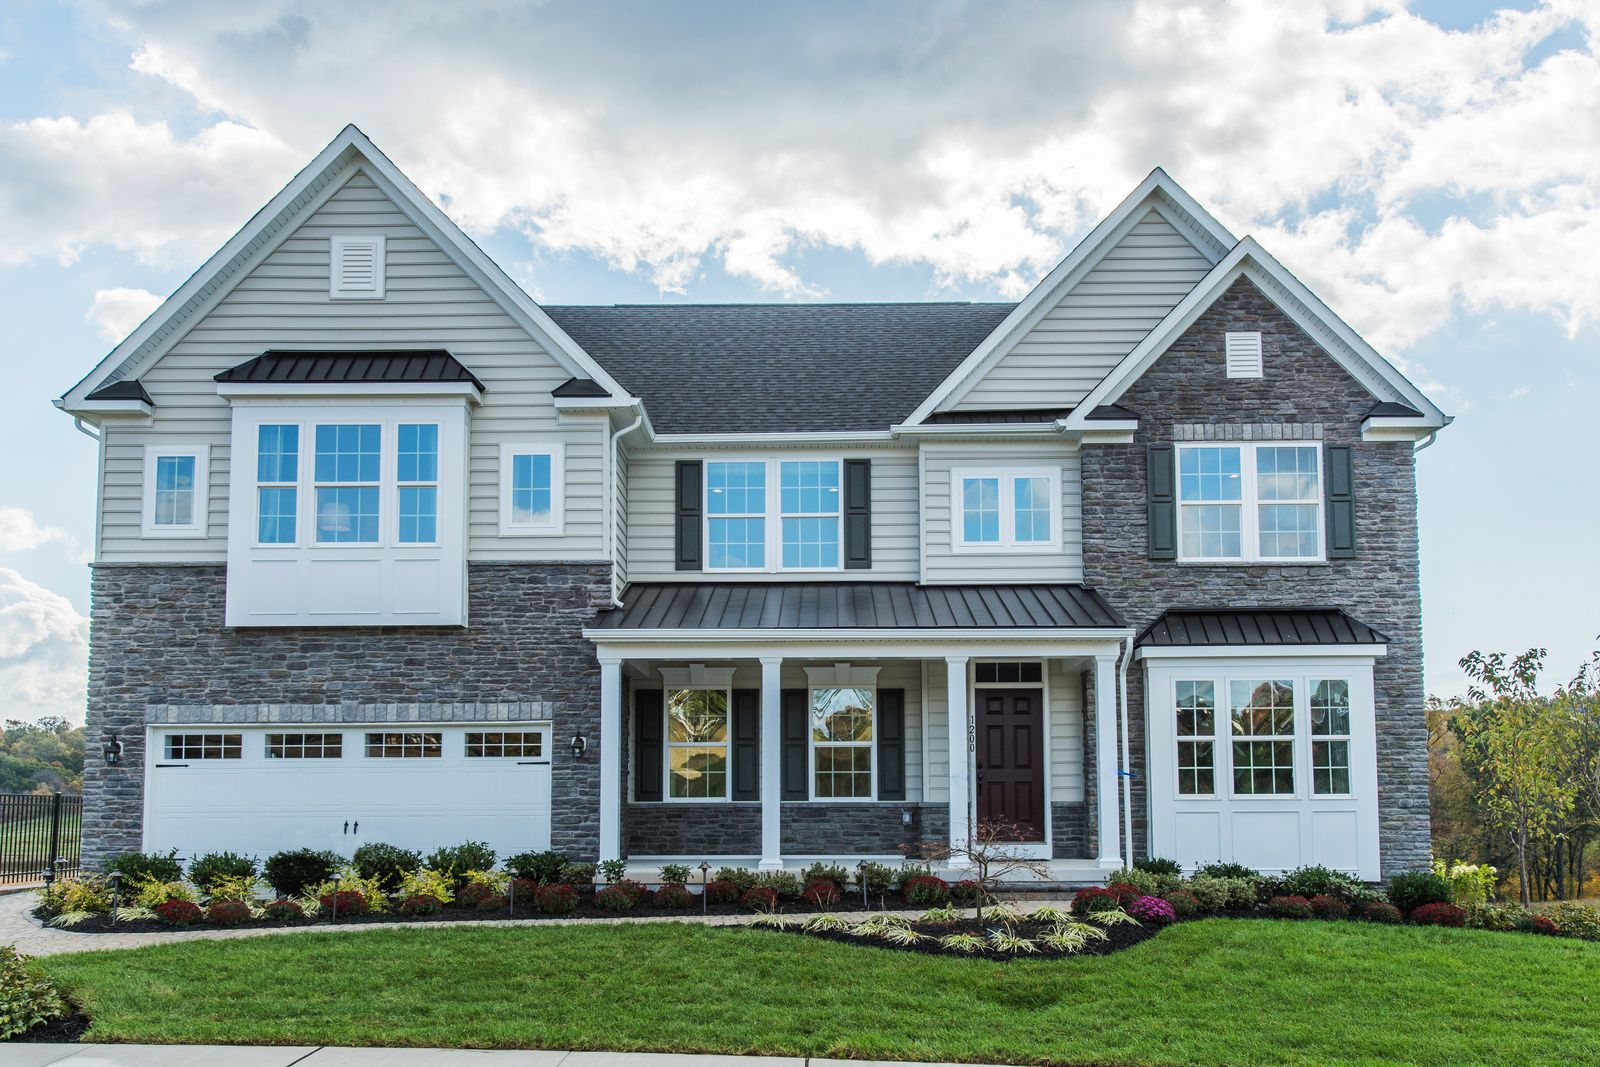 WELCOME TO THE RESERVE AT NANCY RUN:The only new homes minutes from St. Luke's and Rt. 22 with 4+ bedrooms, included finished basements, and up to 5,000 square feet of living area.Click hereto schedule your visit today!